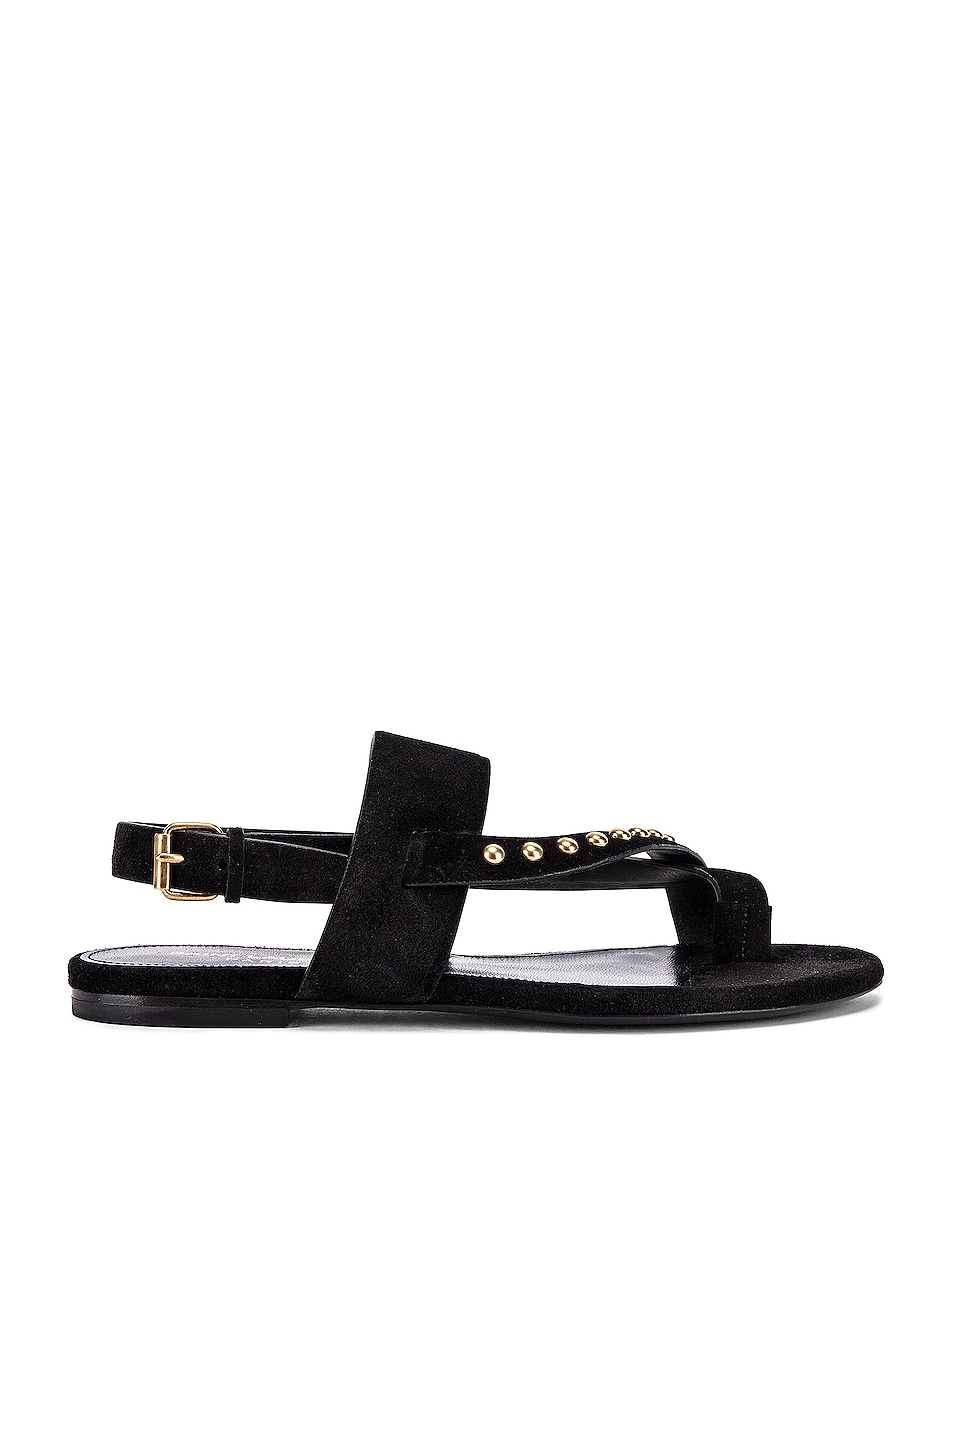 Image 1 of Saint Laurent Gia Stud Sandals in Black